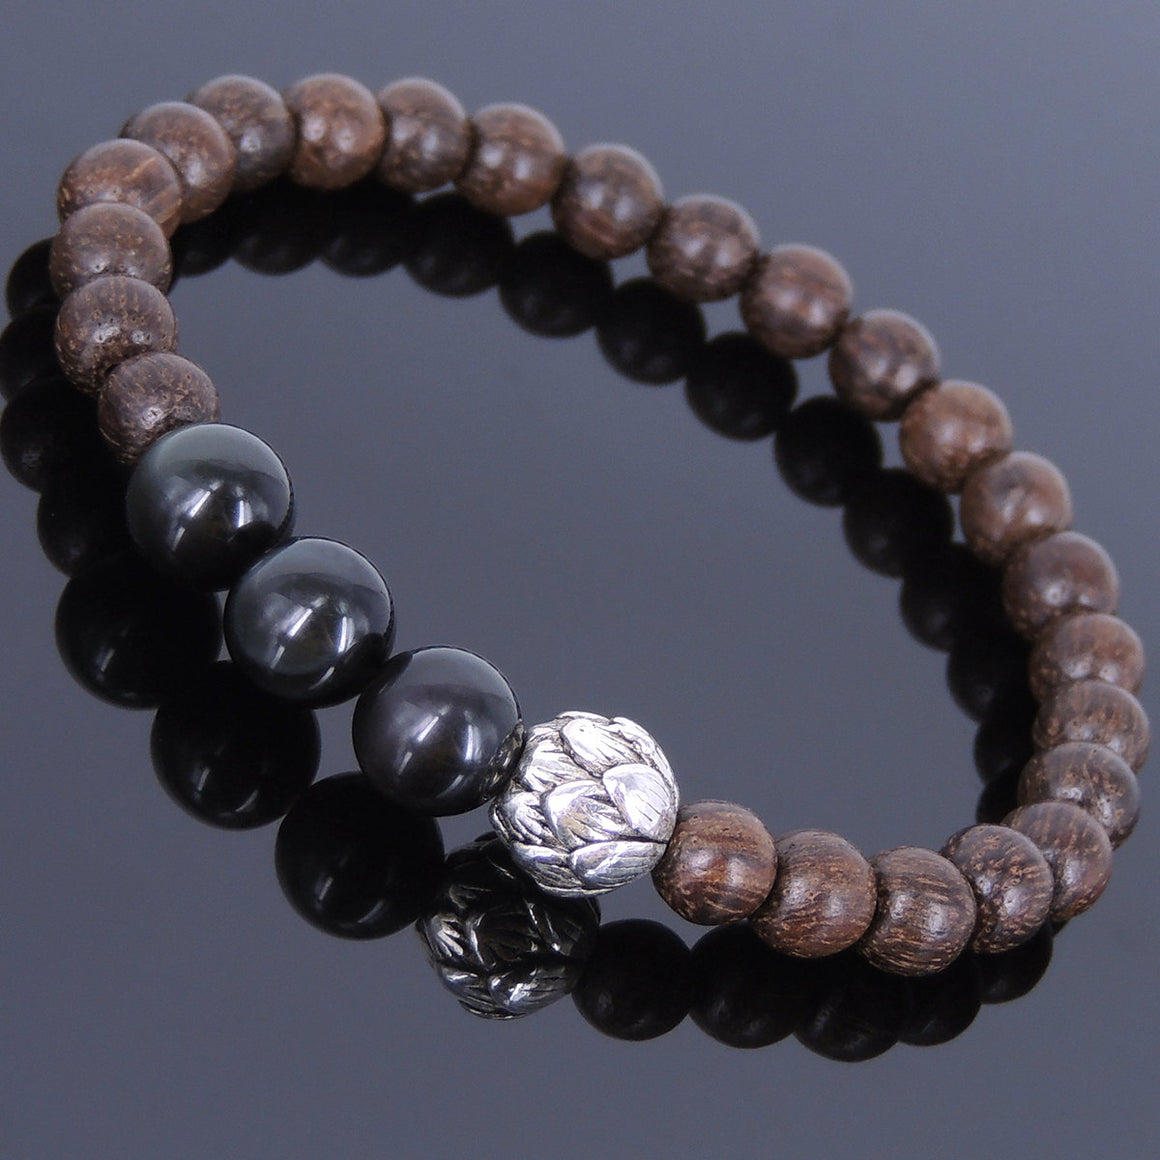 Rainbow Black Obsidian & Red Agarwood Bracelet for Prayer & Meditation with Tibetan Silver Lotus Protection Bead - Handmade by Gem & Silver AWB037